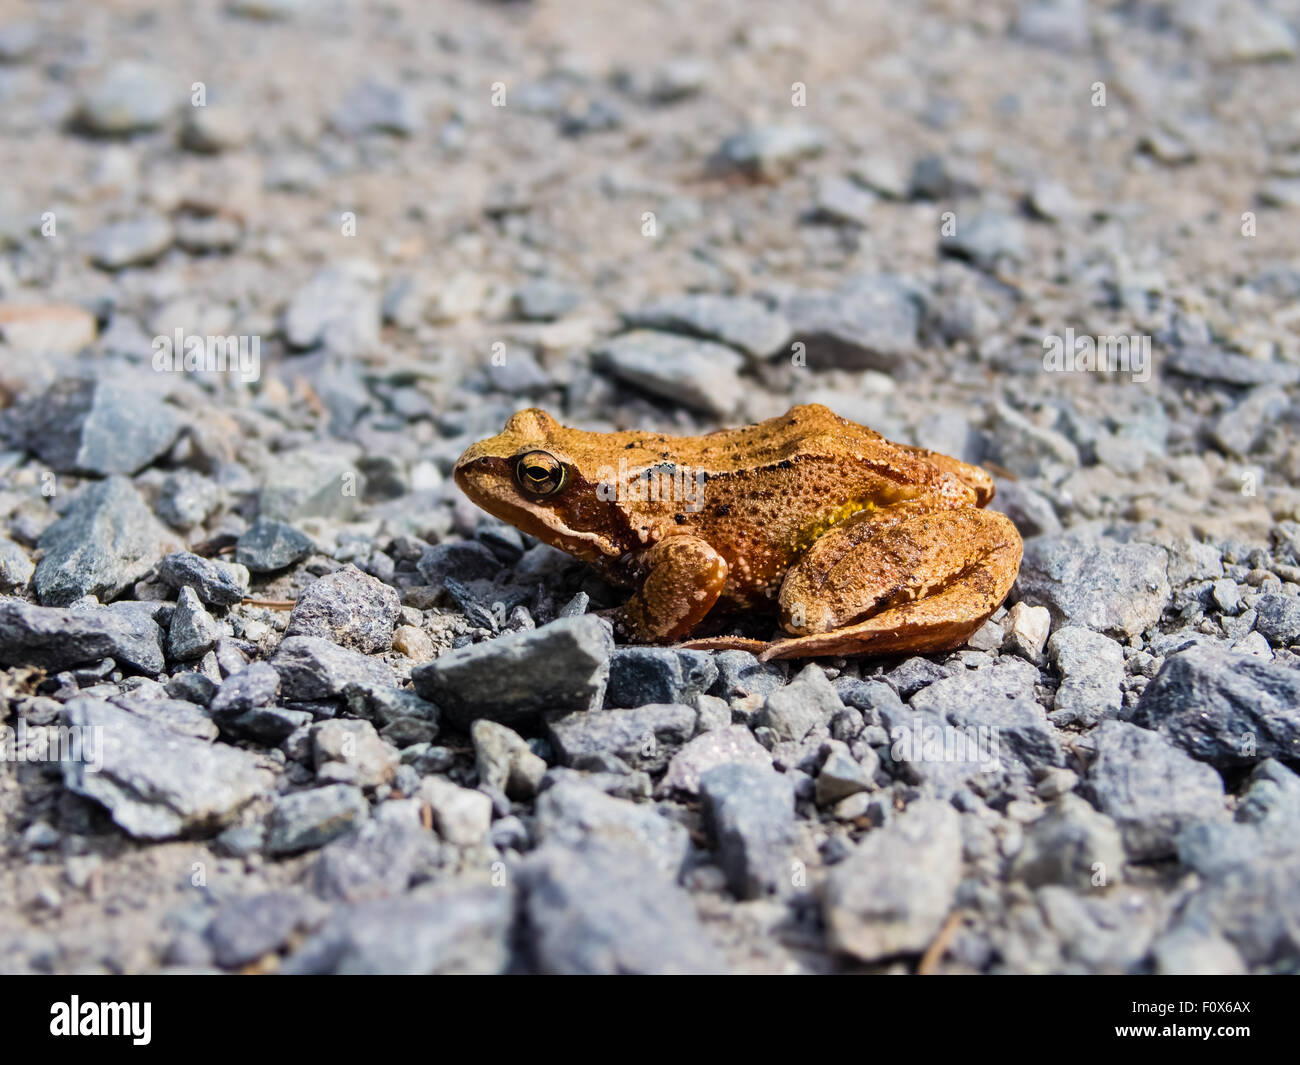 Common toad, rana temporaria, sitting on the rocky road - Stock Image